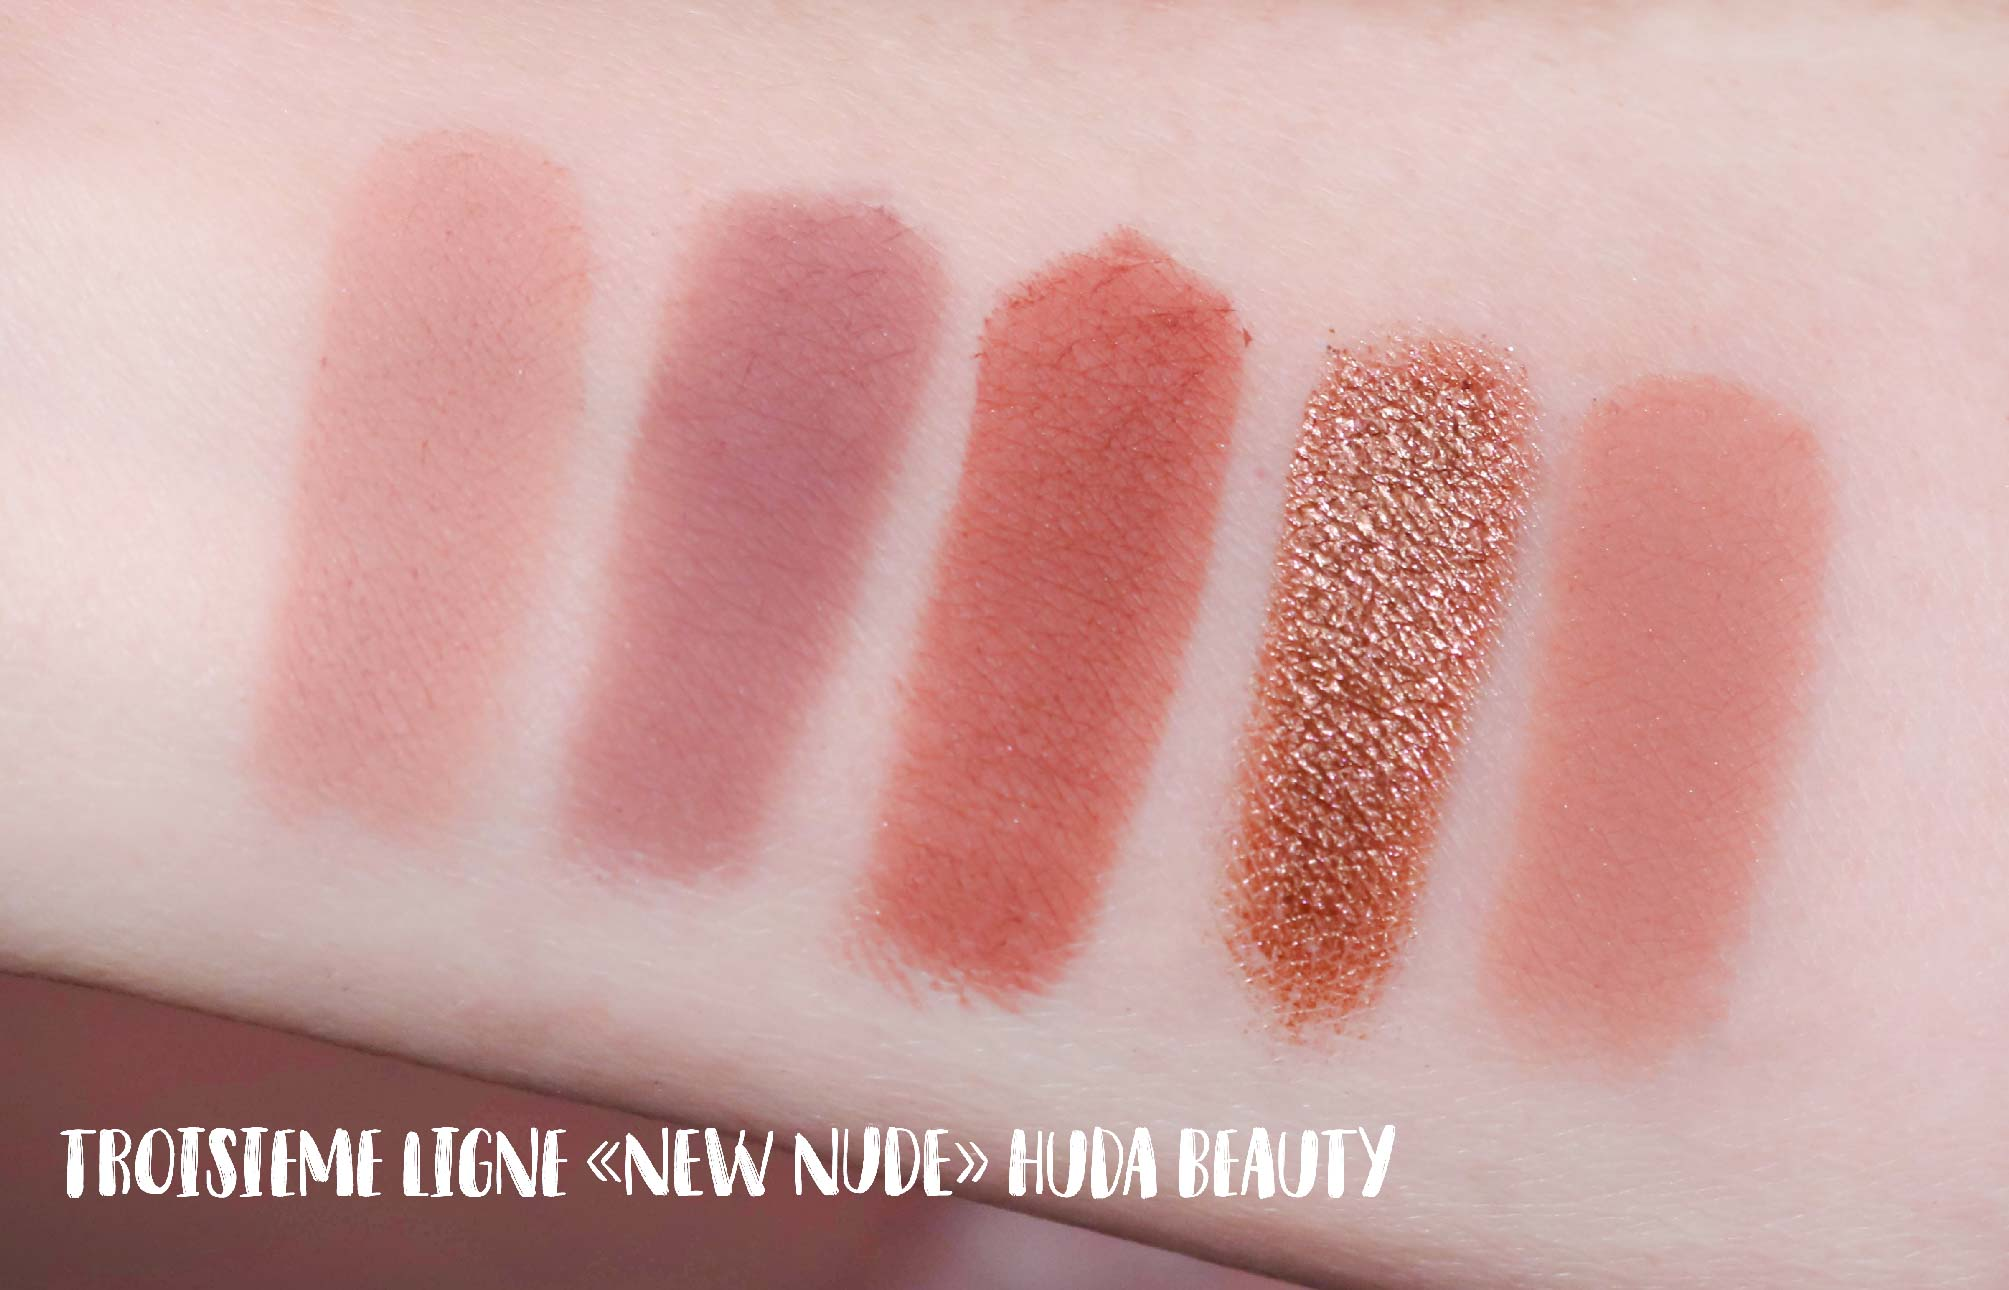 revue-review-palette-new-nude-obsessions-huda-beauty-nacre-sephora-avis-prix-swatch-makeupbyazadig-nude-2